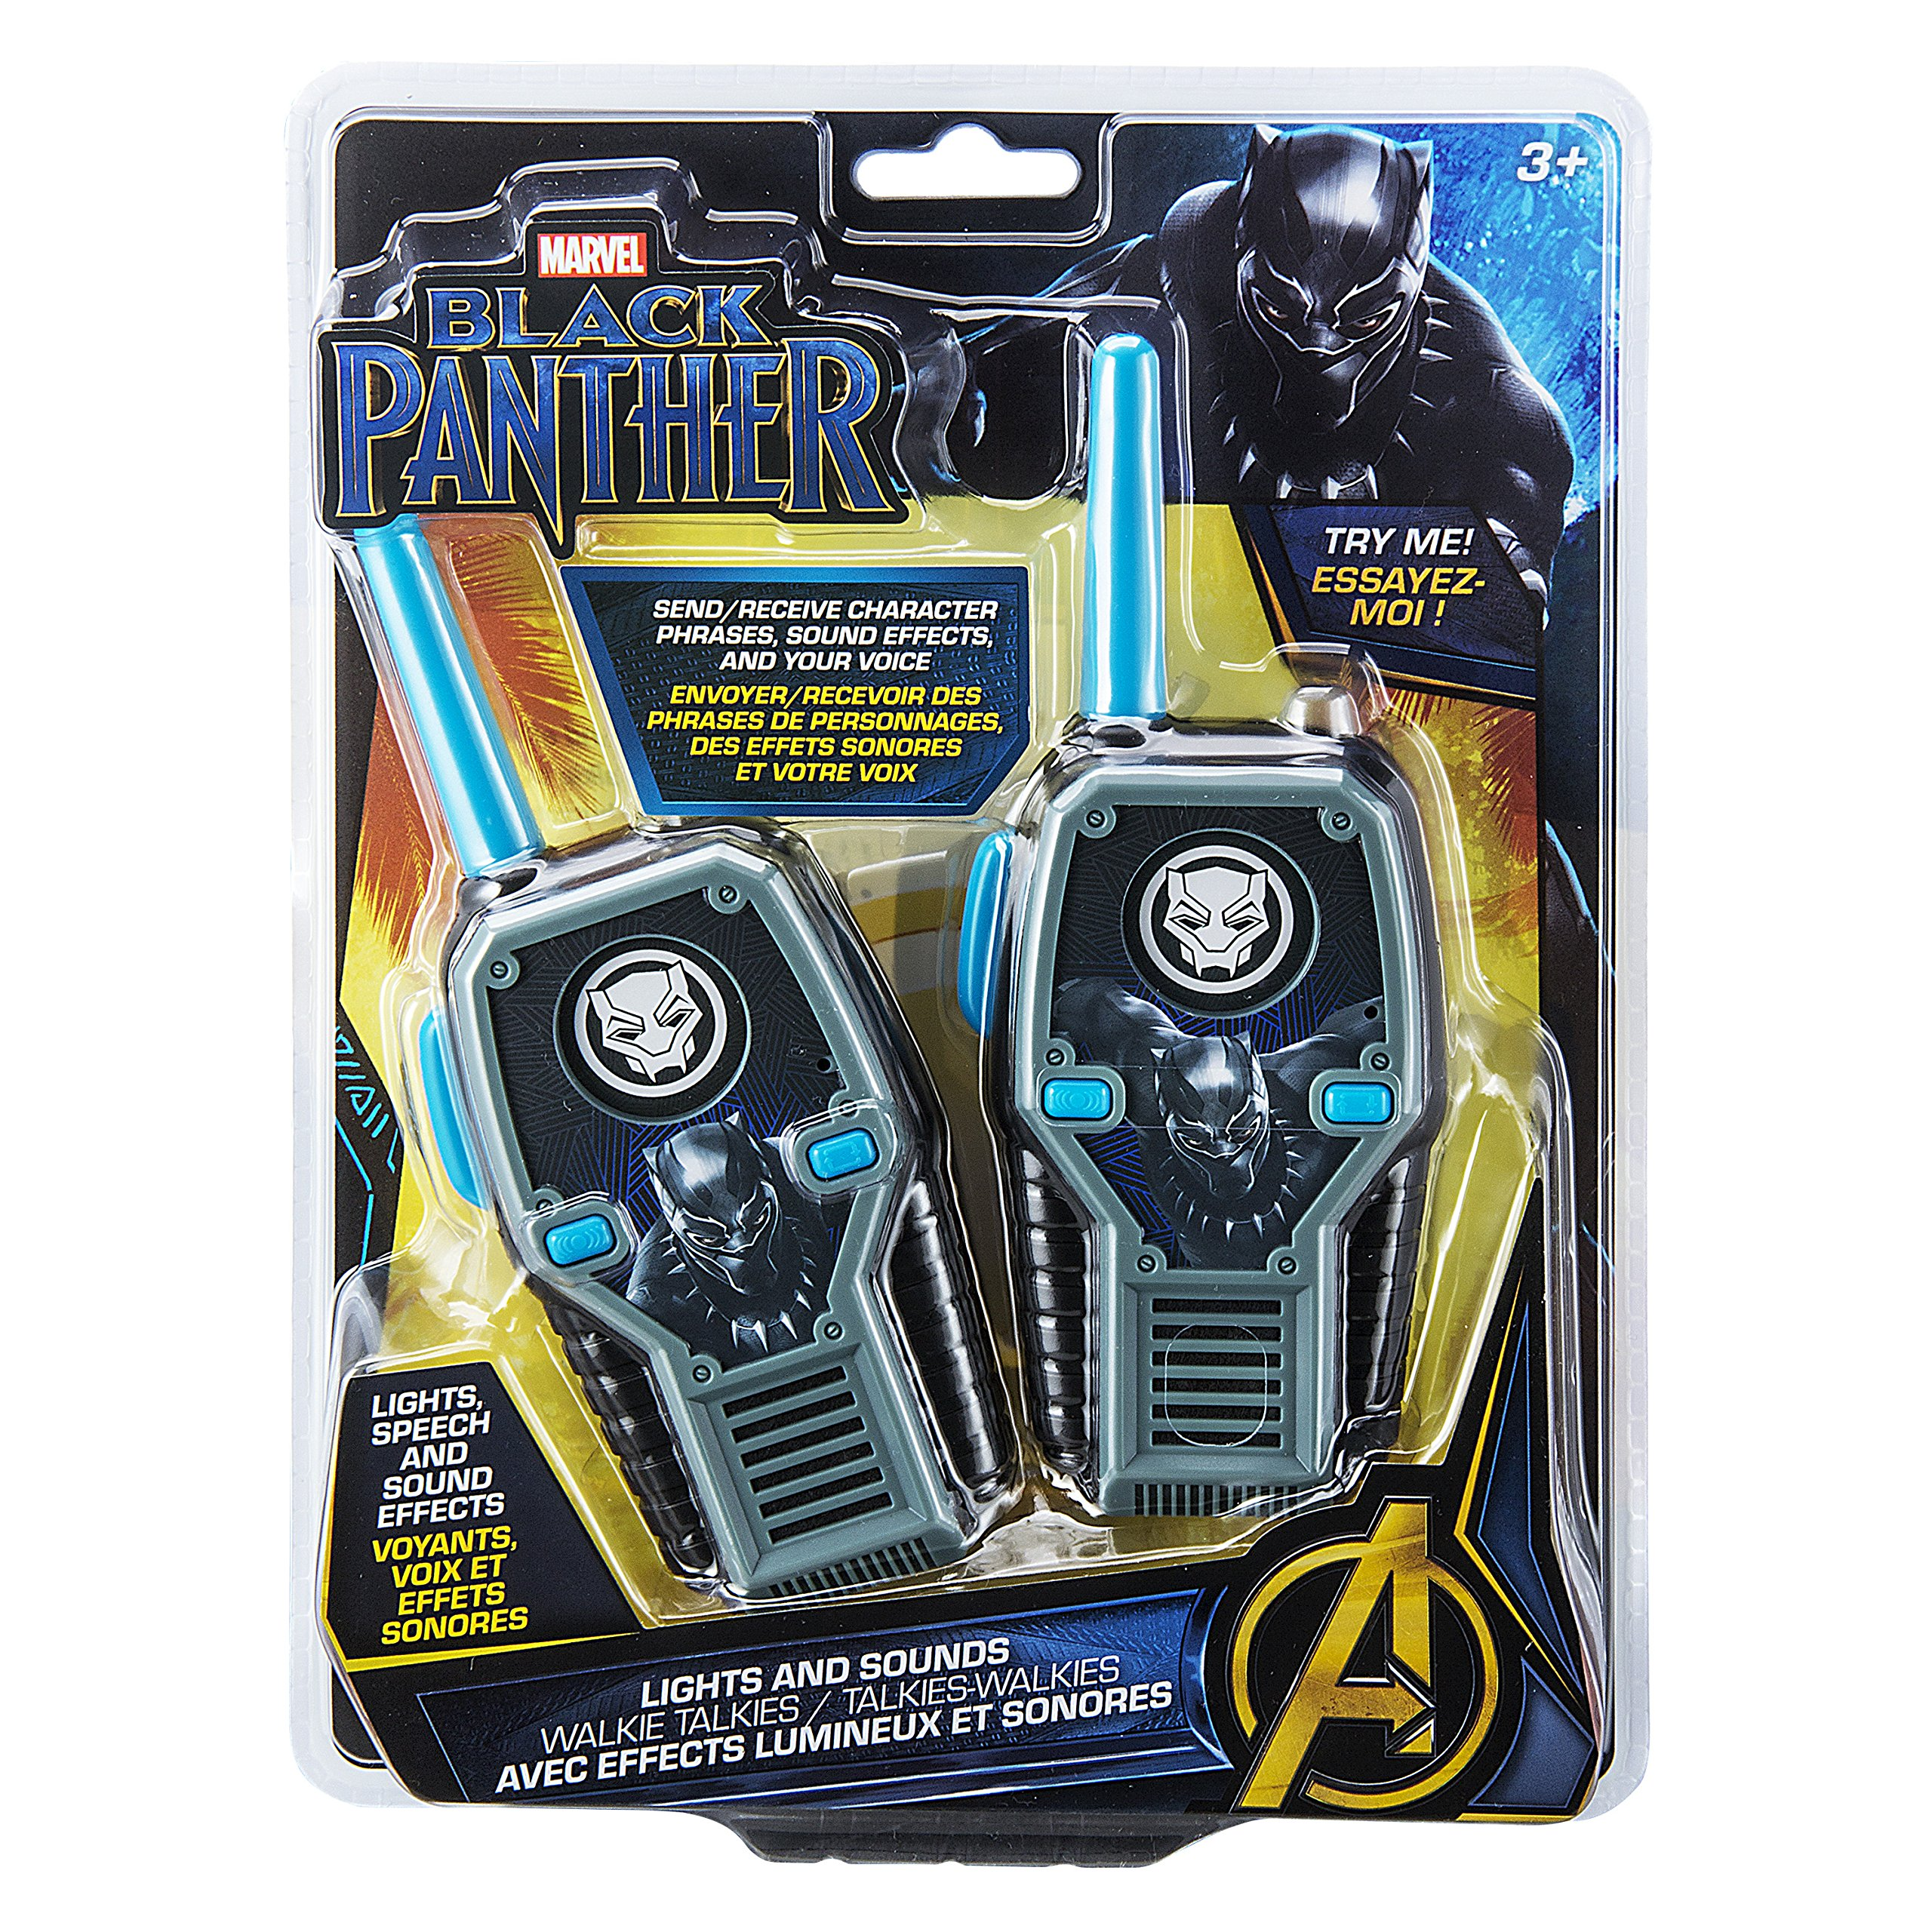 eKids Black Panther FRS Walkie Talkies with Lights & Sounds Kid Friendly Easy to Use by eKids (Image #5)